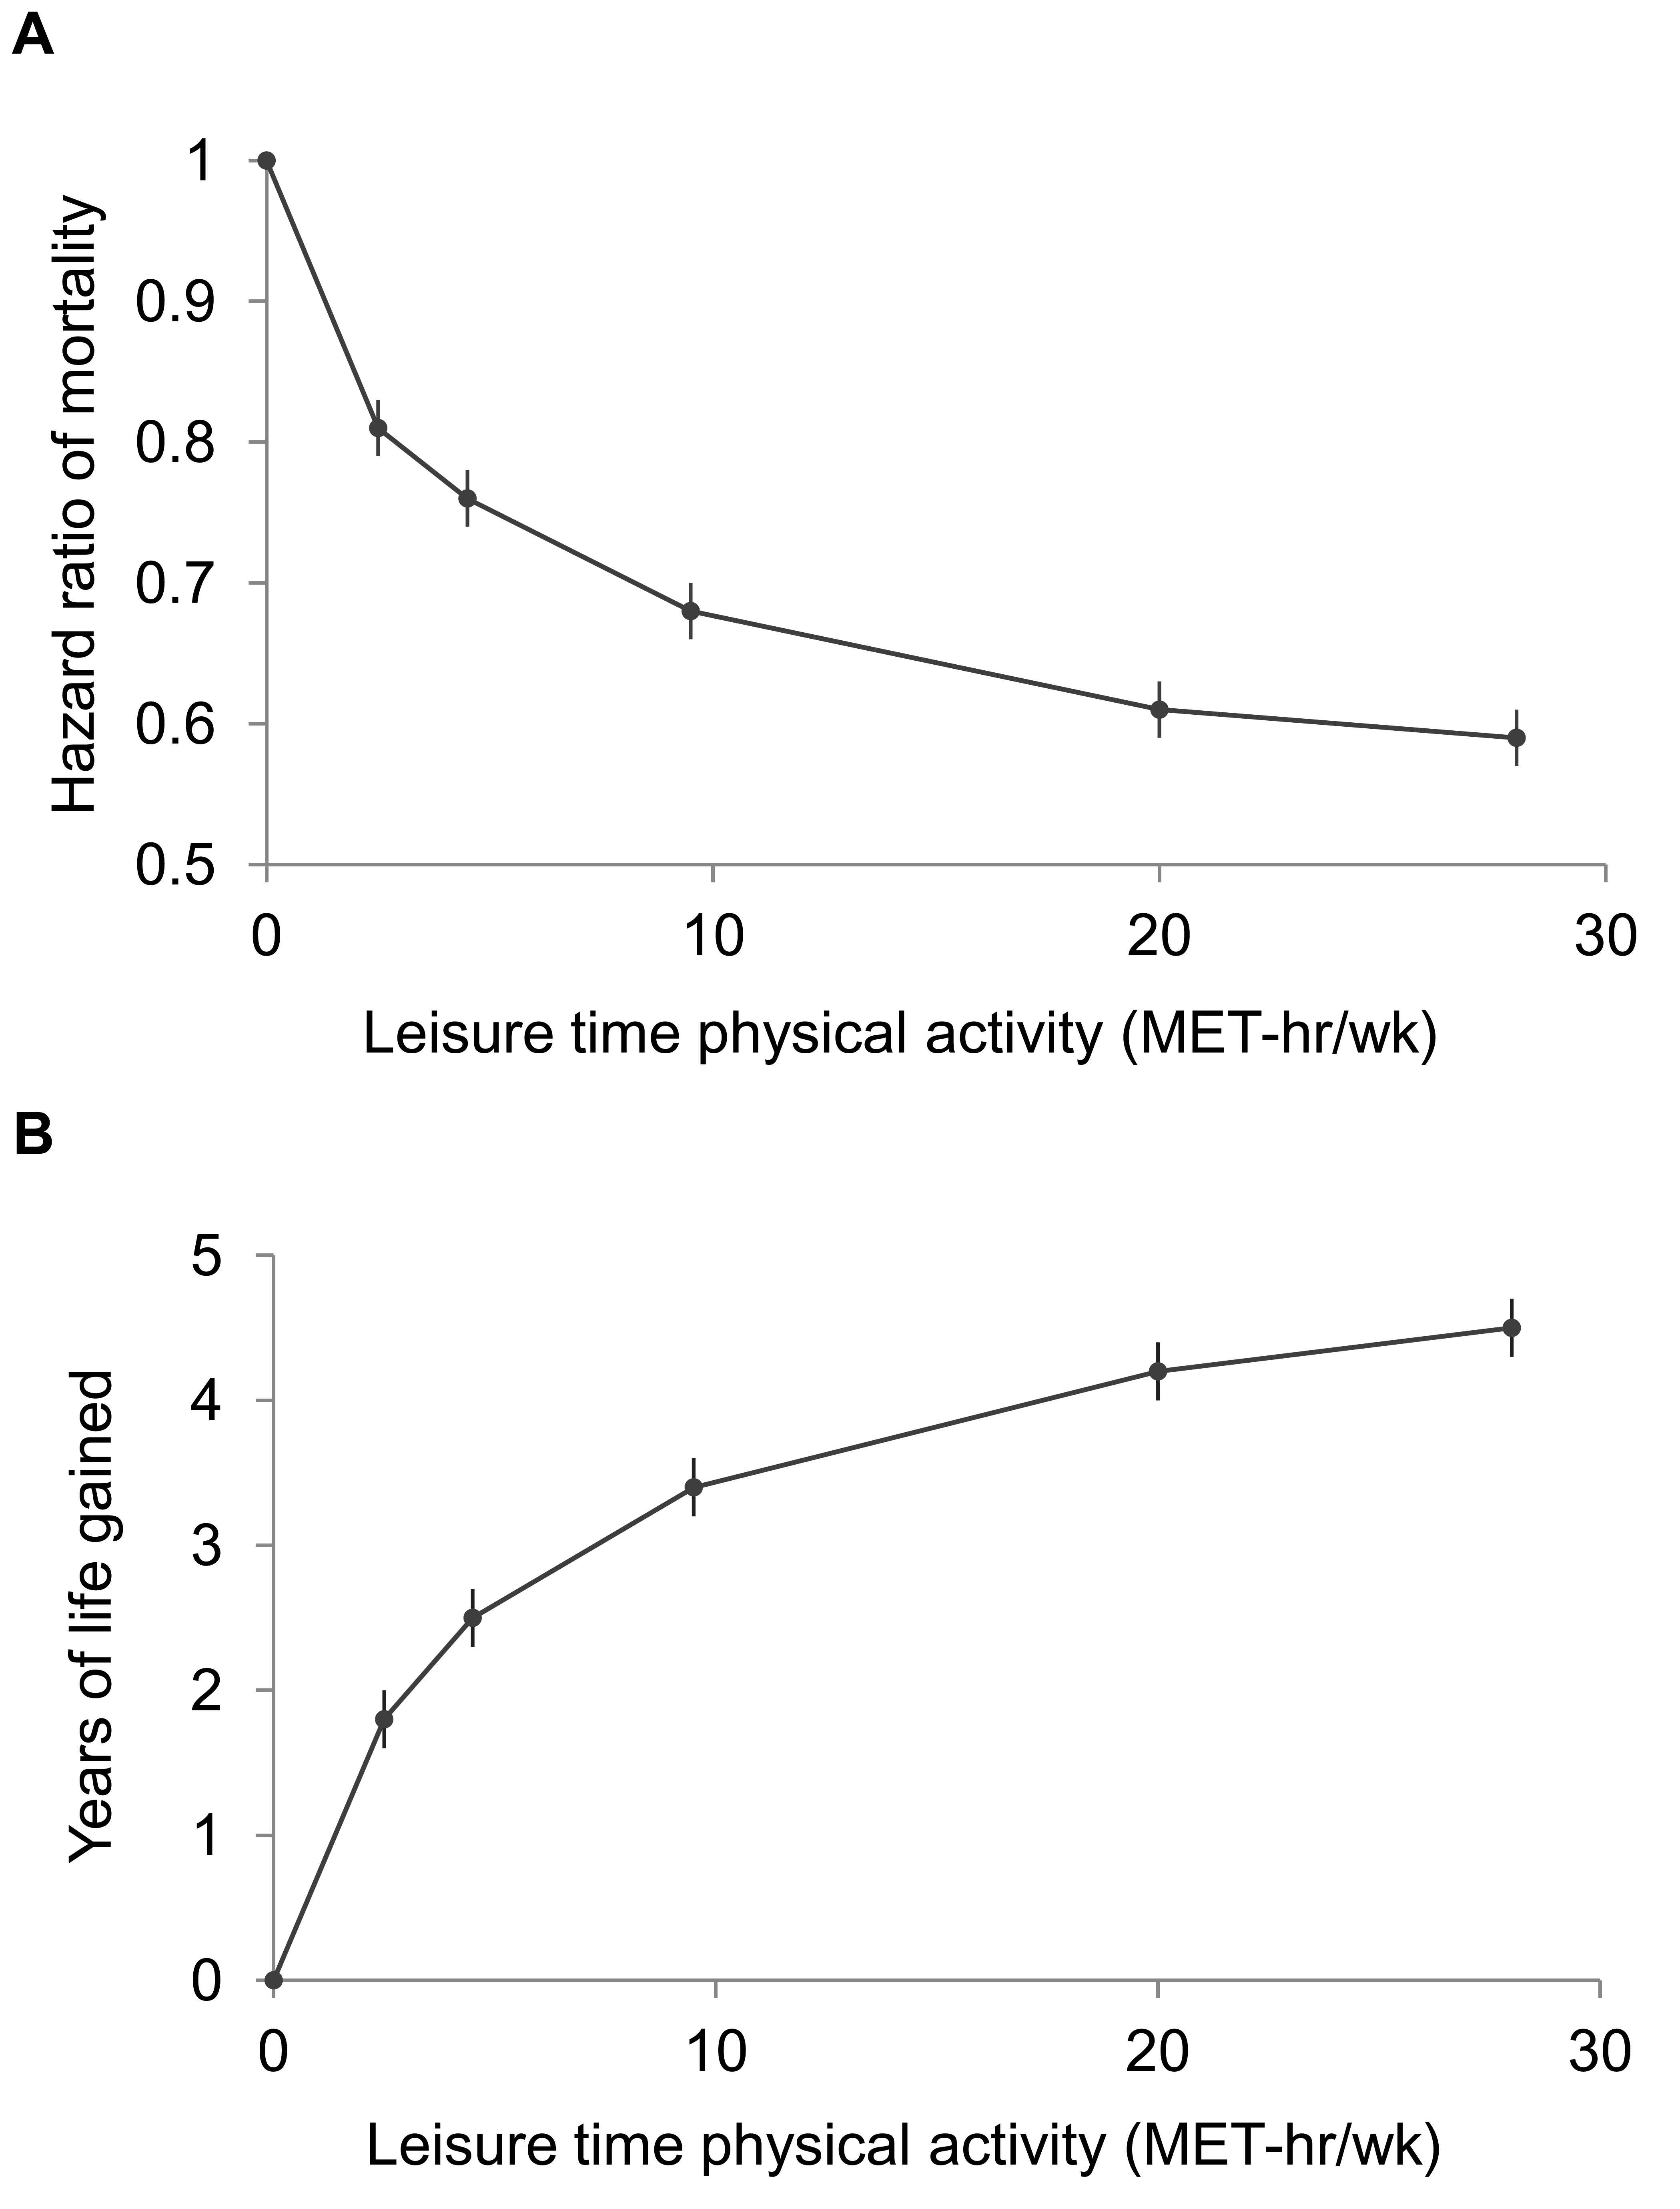 Leisure time physical activity level and hazard ratios for mortality and gains in life expectancy after age 40.